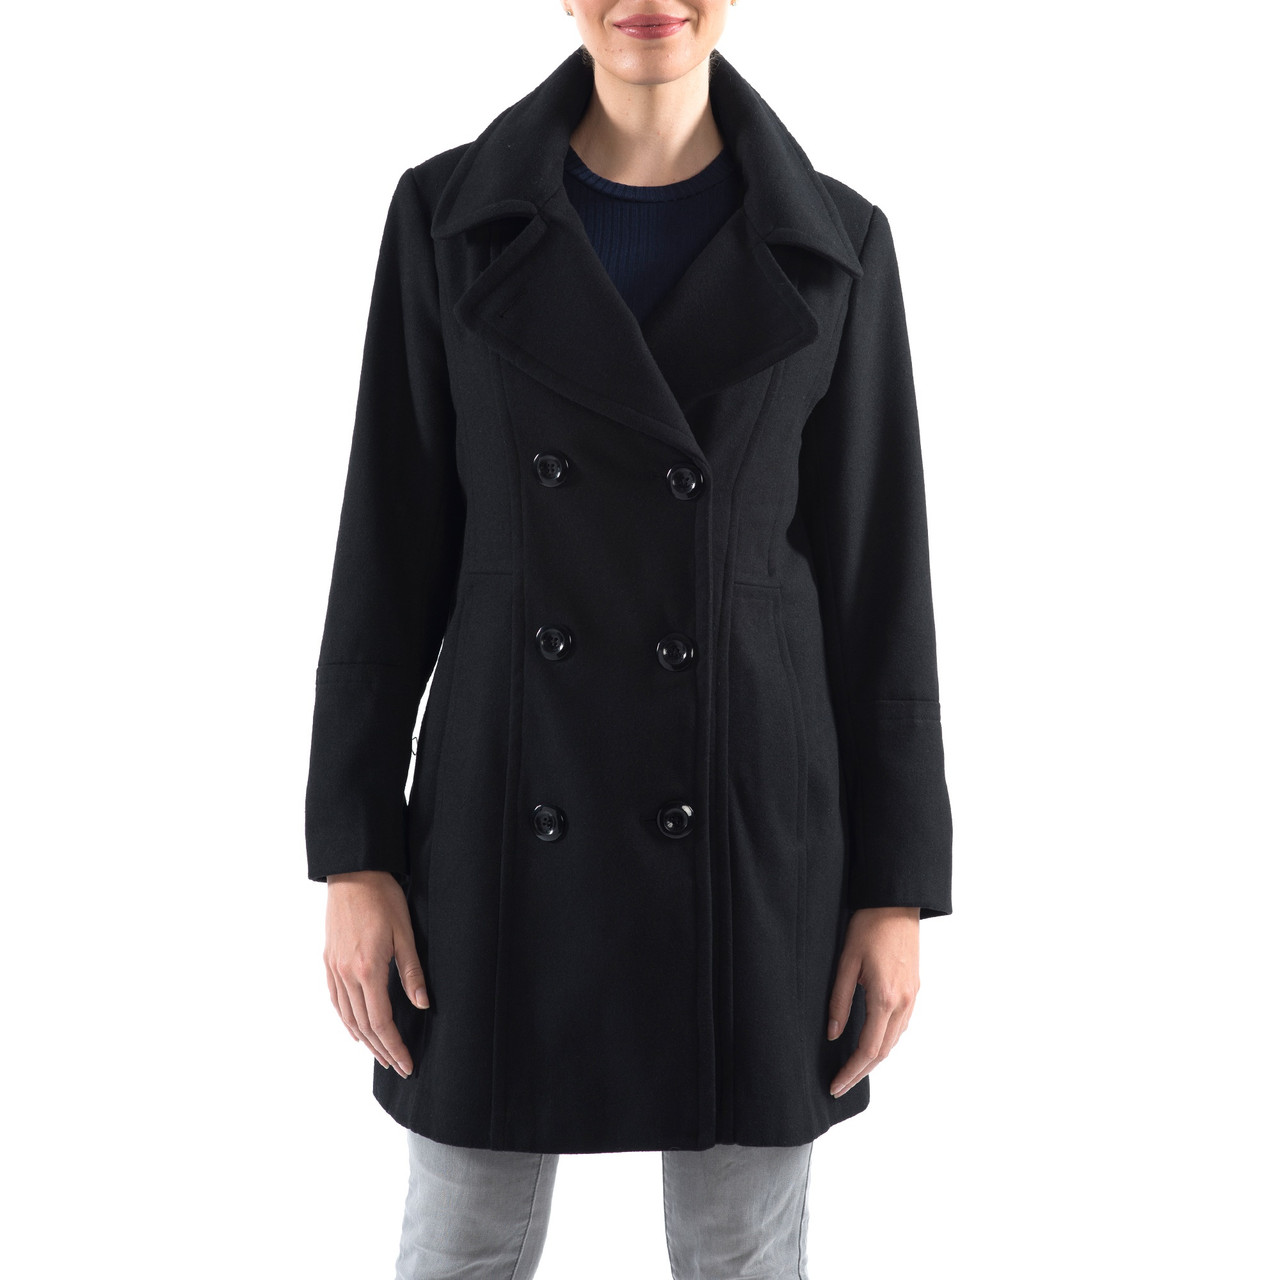 e1886c3540 Alpine Swiss Norah Womens Wool Blend Double Breasted Peacoat